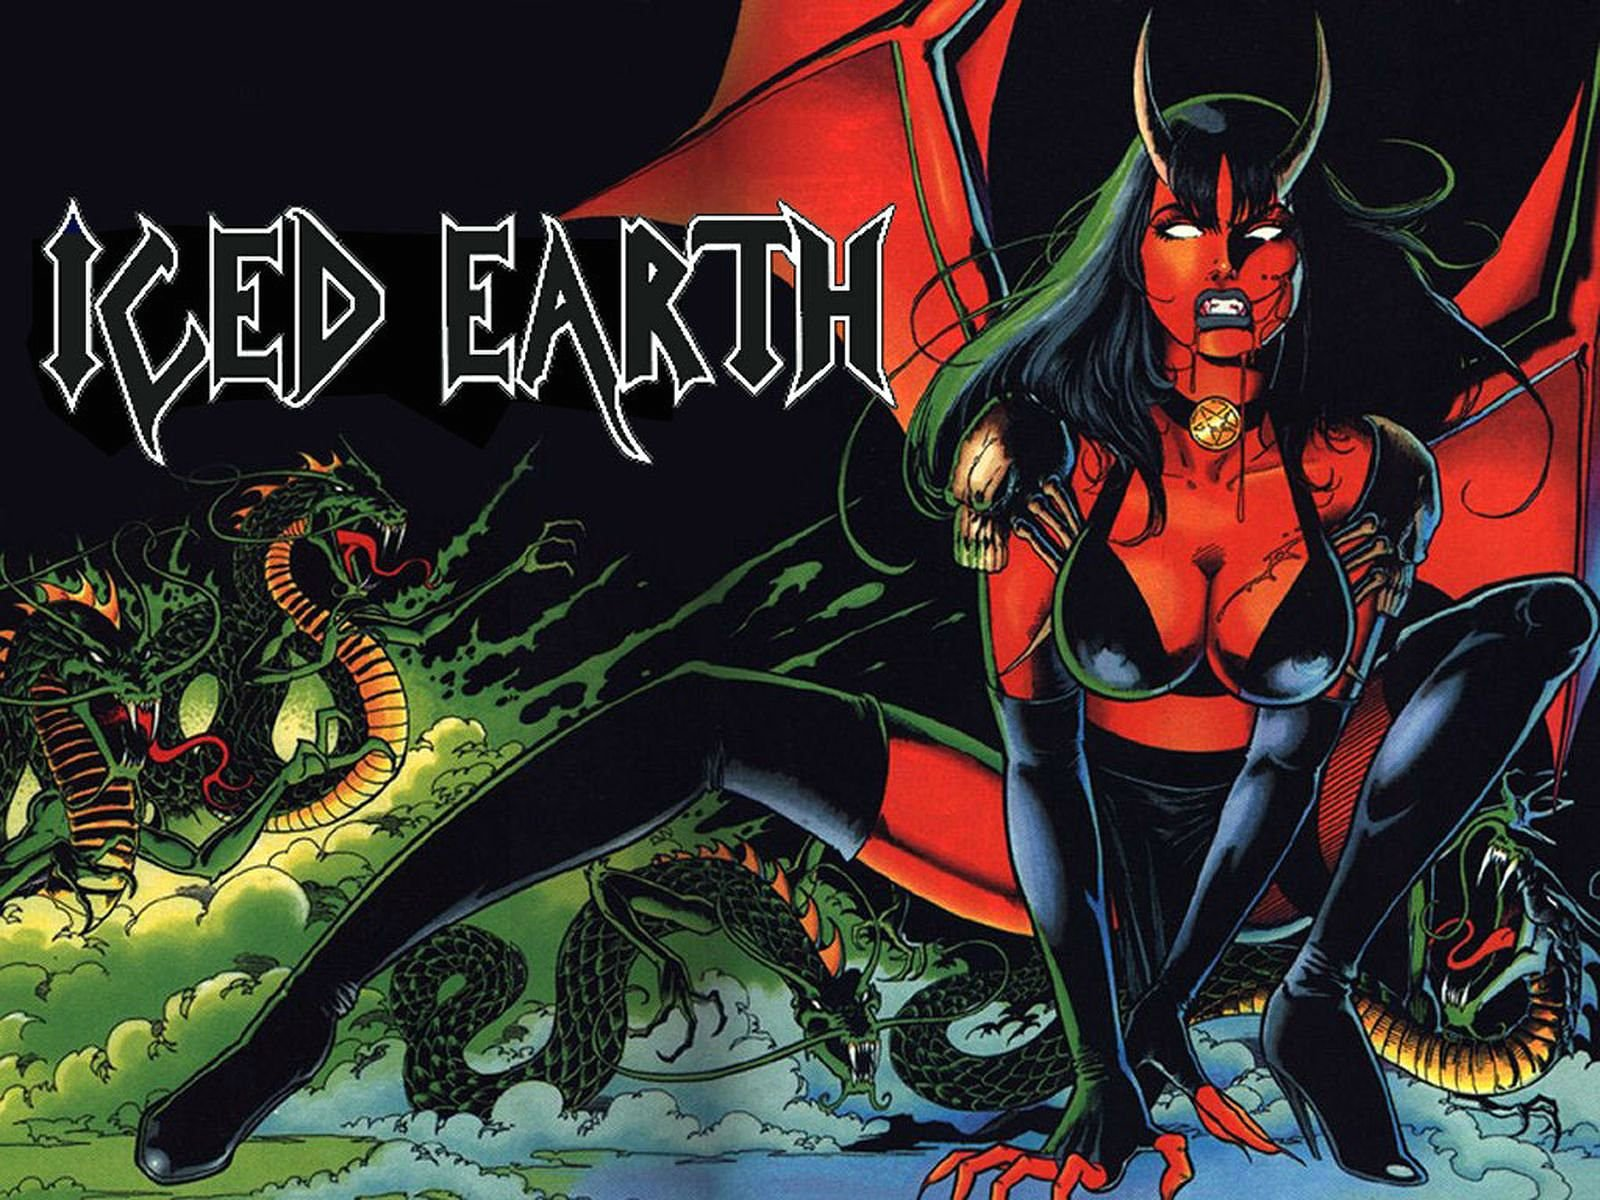 iced earth iphone 5 wallpaper download